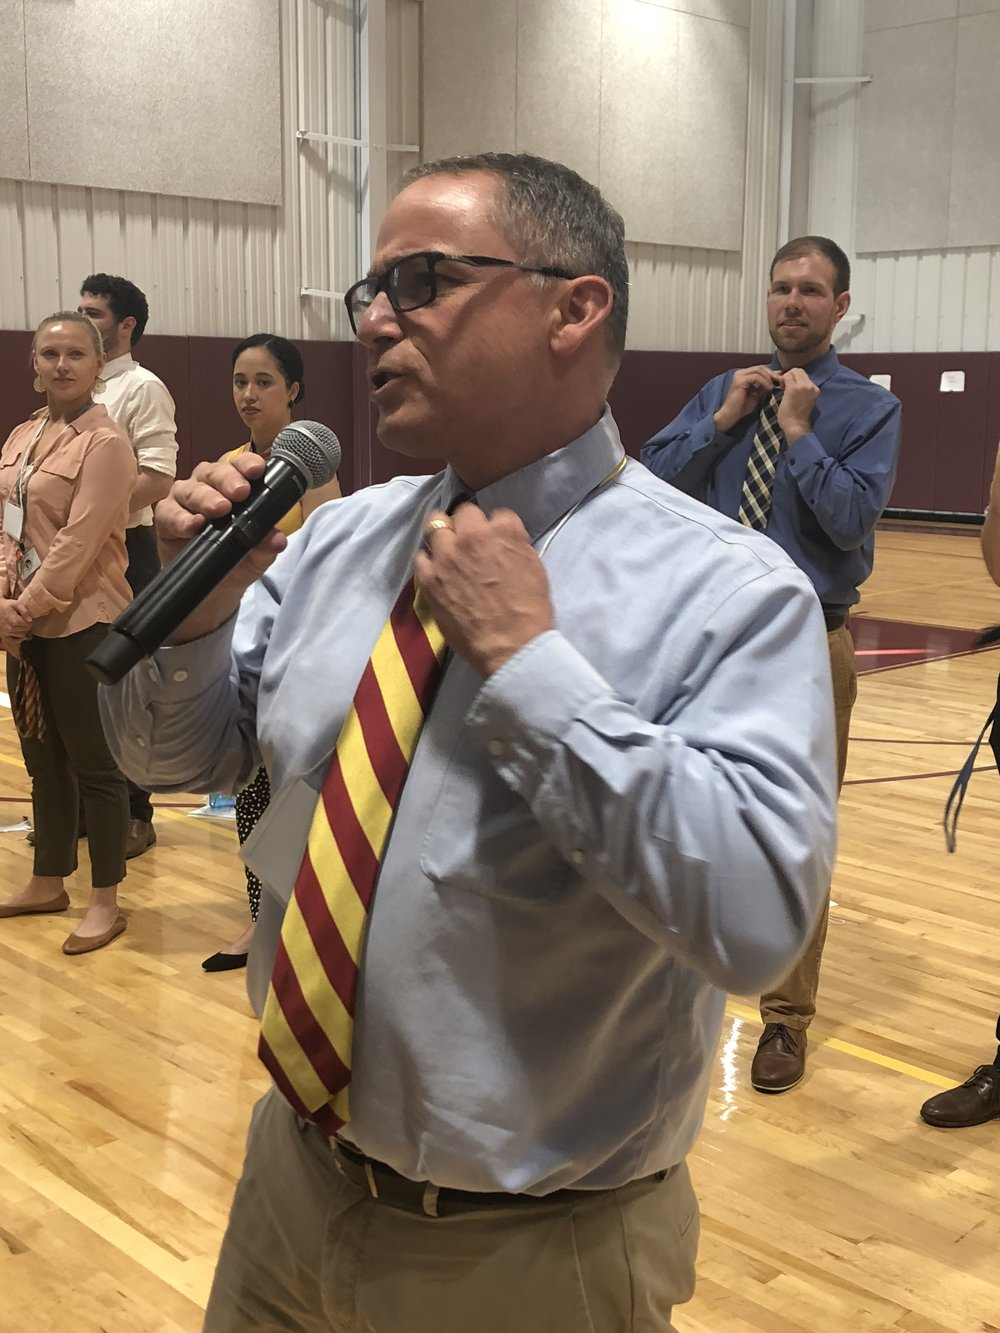 2018.08.27 Berkley leading Tie Ceremony.jpg